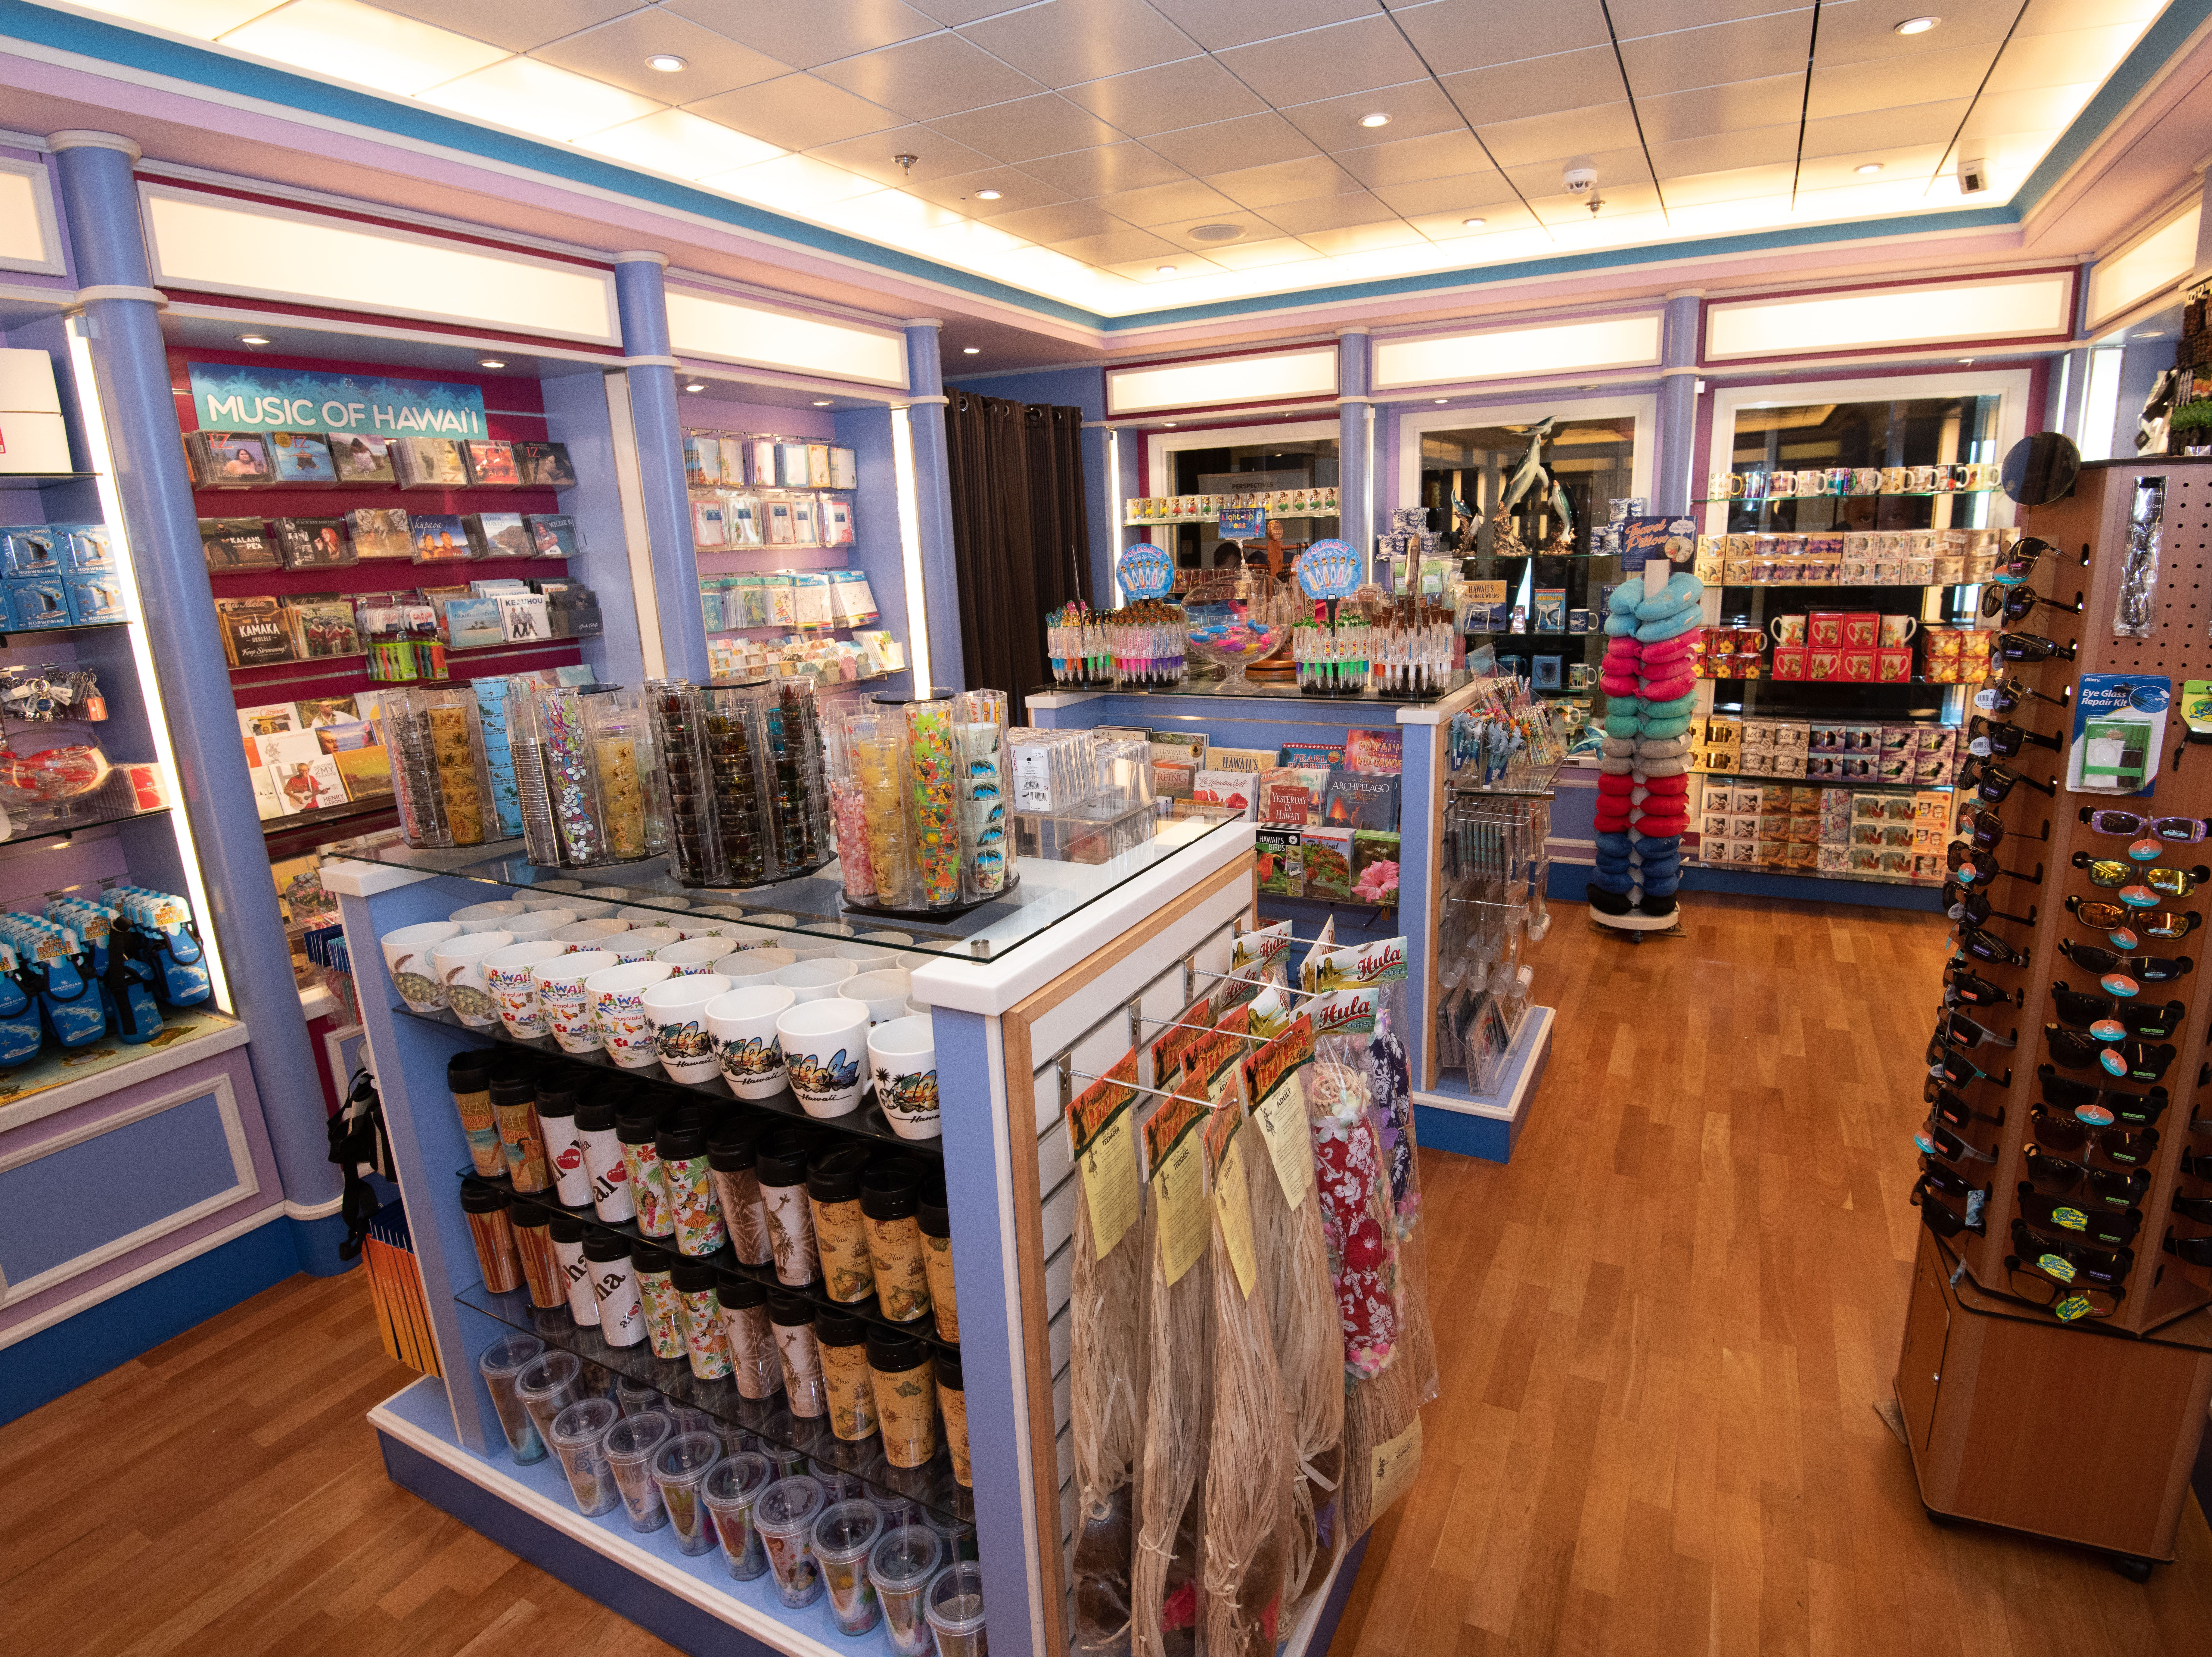 Island Treasures, located in the retail area of Pride of America, sells Hawaii souvenirs as well as toiletries.